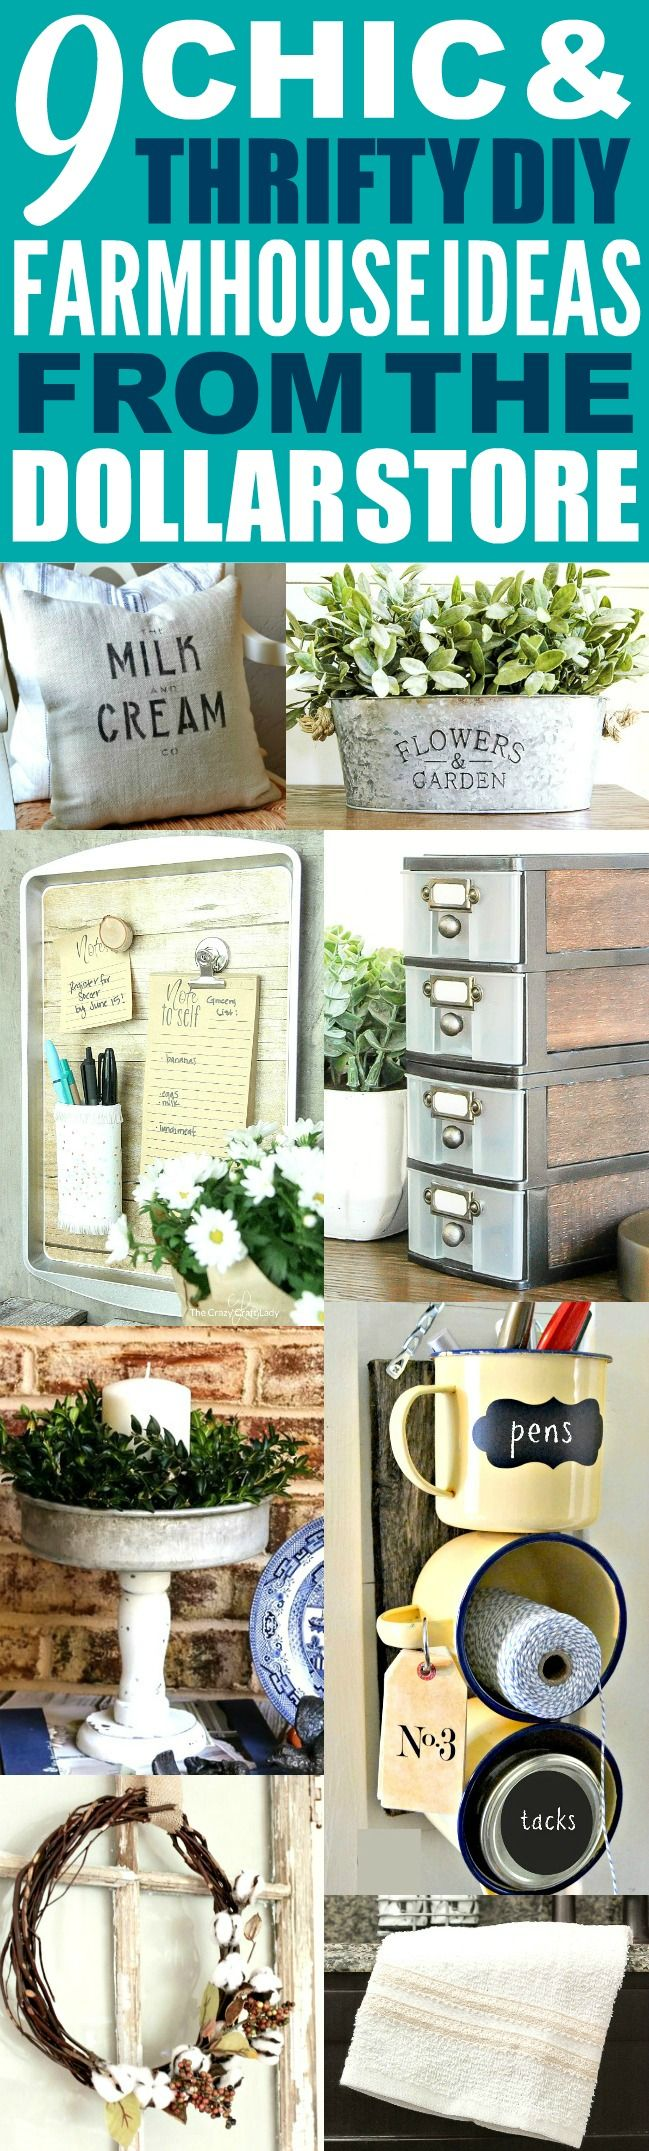 These 9 dollar store farmhouse decor ideas are THE BEST! I'm so happy I found these GREAT fixer upper ideas! Now I have some great ways to make my home look like Chip and Joanna Gaines' farmhouse style!